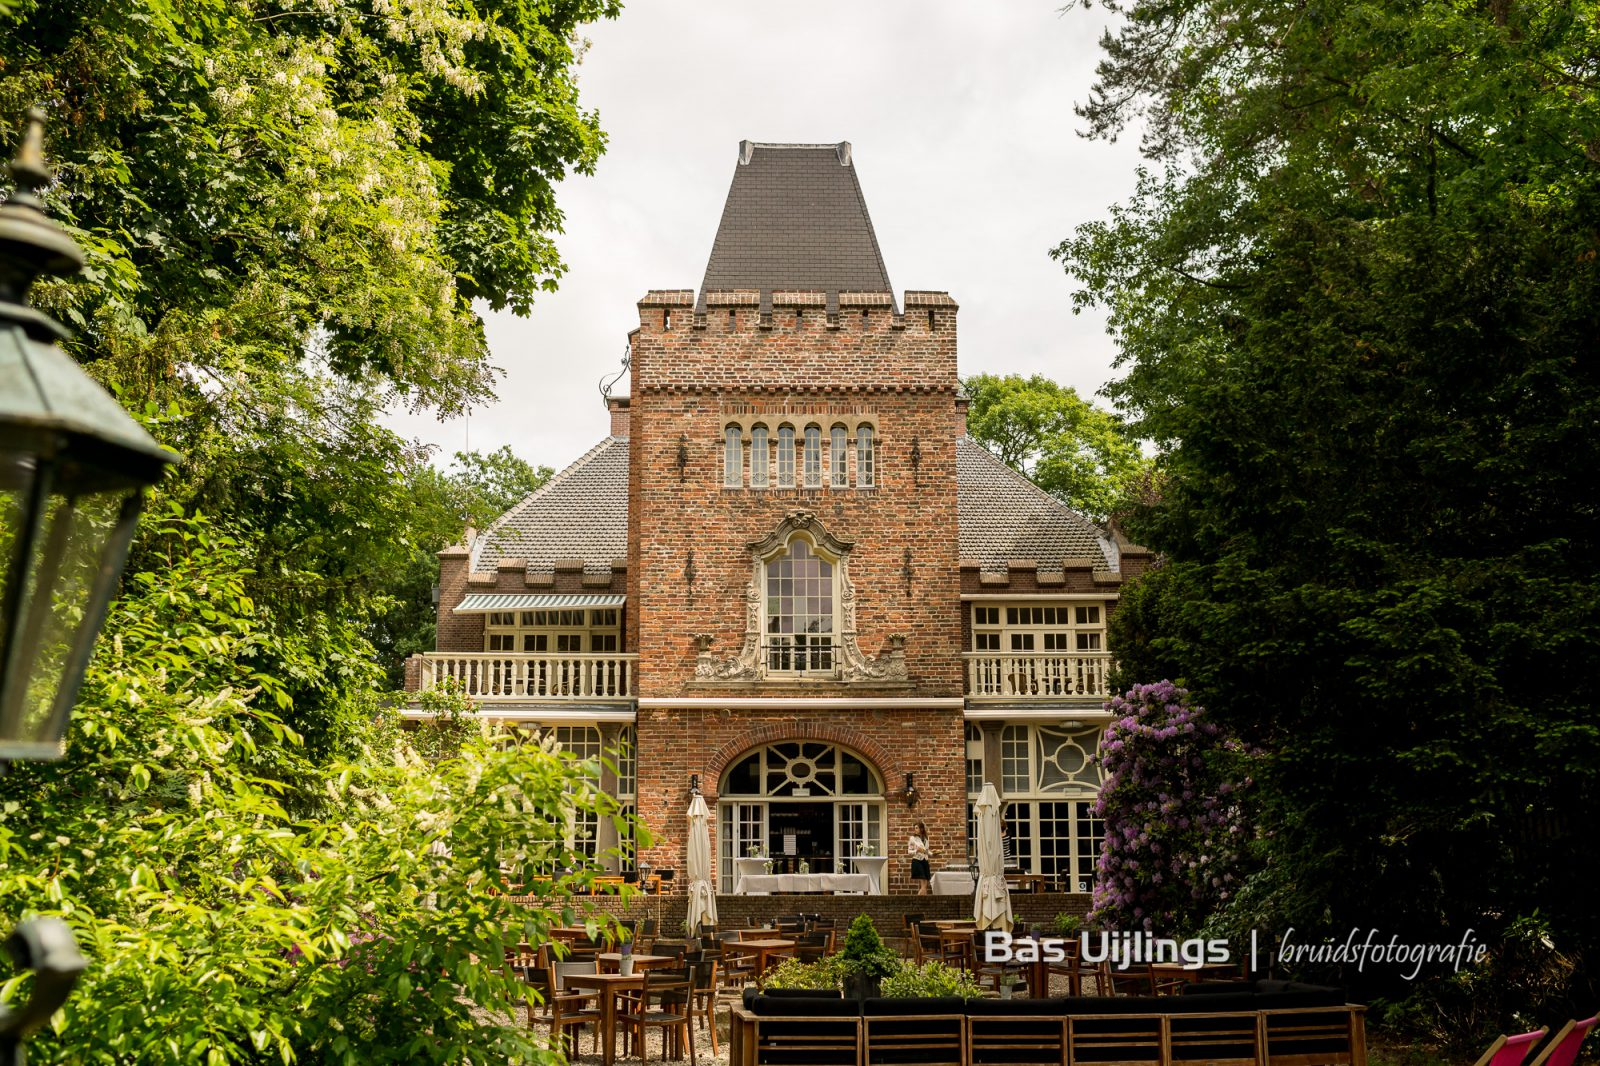 Trouwen in Kasteel Kerckebosch in Zeist